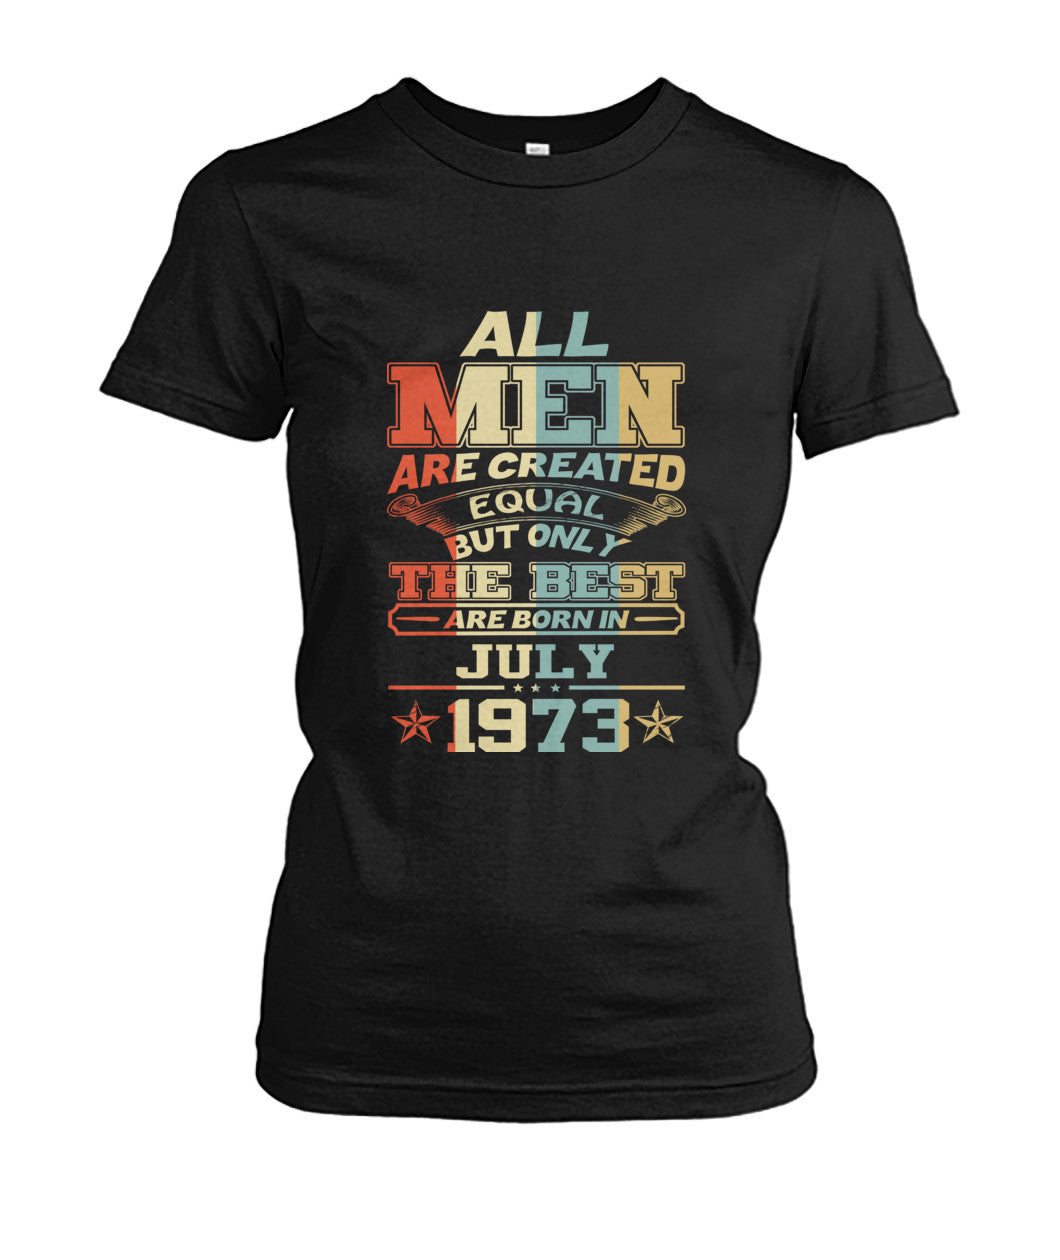 All Men Are Created Equal Only Best Are Born July 1973